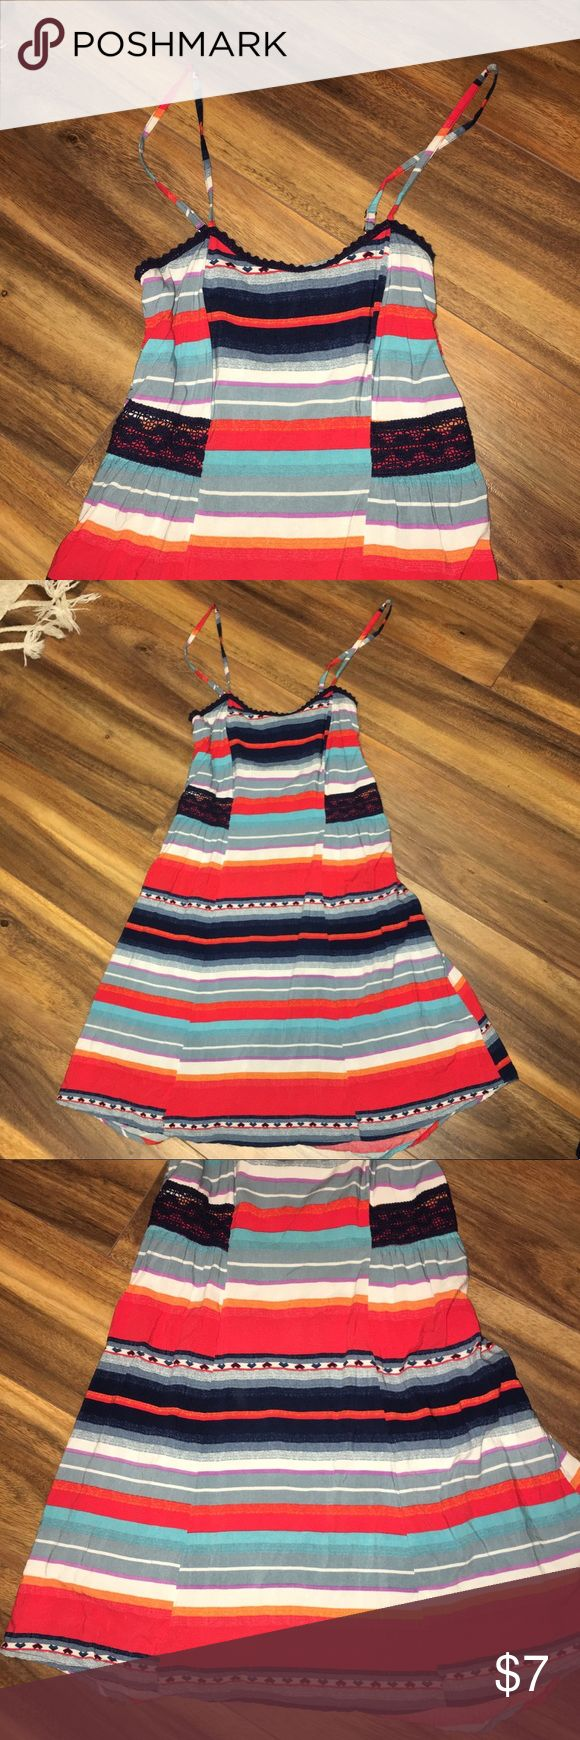 Boho Style Striped Dress Striped dress in spotless condition. Thin material and flows beautifully. Perfect for hot weather. Has thin adjustable straps too.  ❌I will NEVER accept $5 offers. Stop with the low ball offers. My clothes are already priced very cheap. Mossimo Supply Co. Dresses Midi